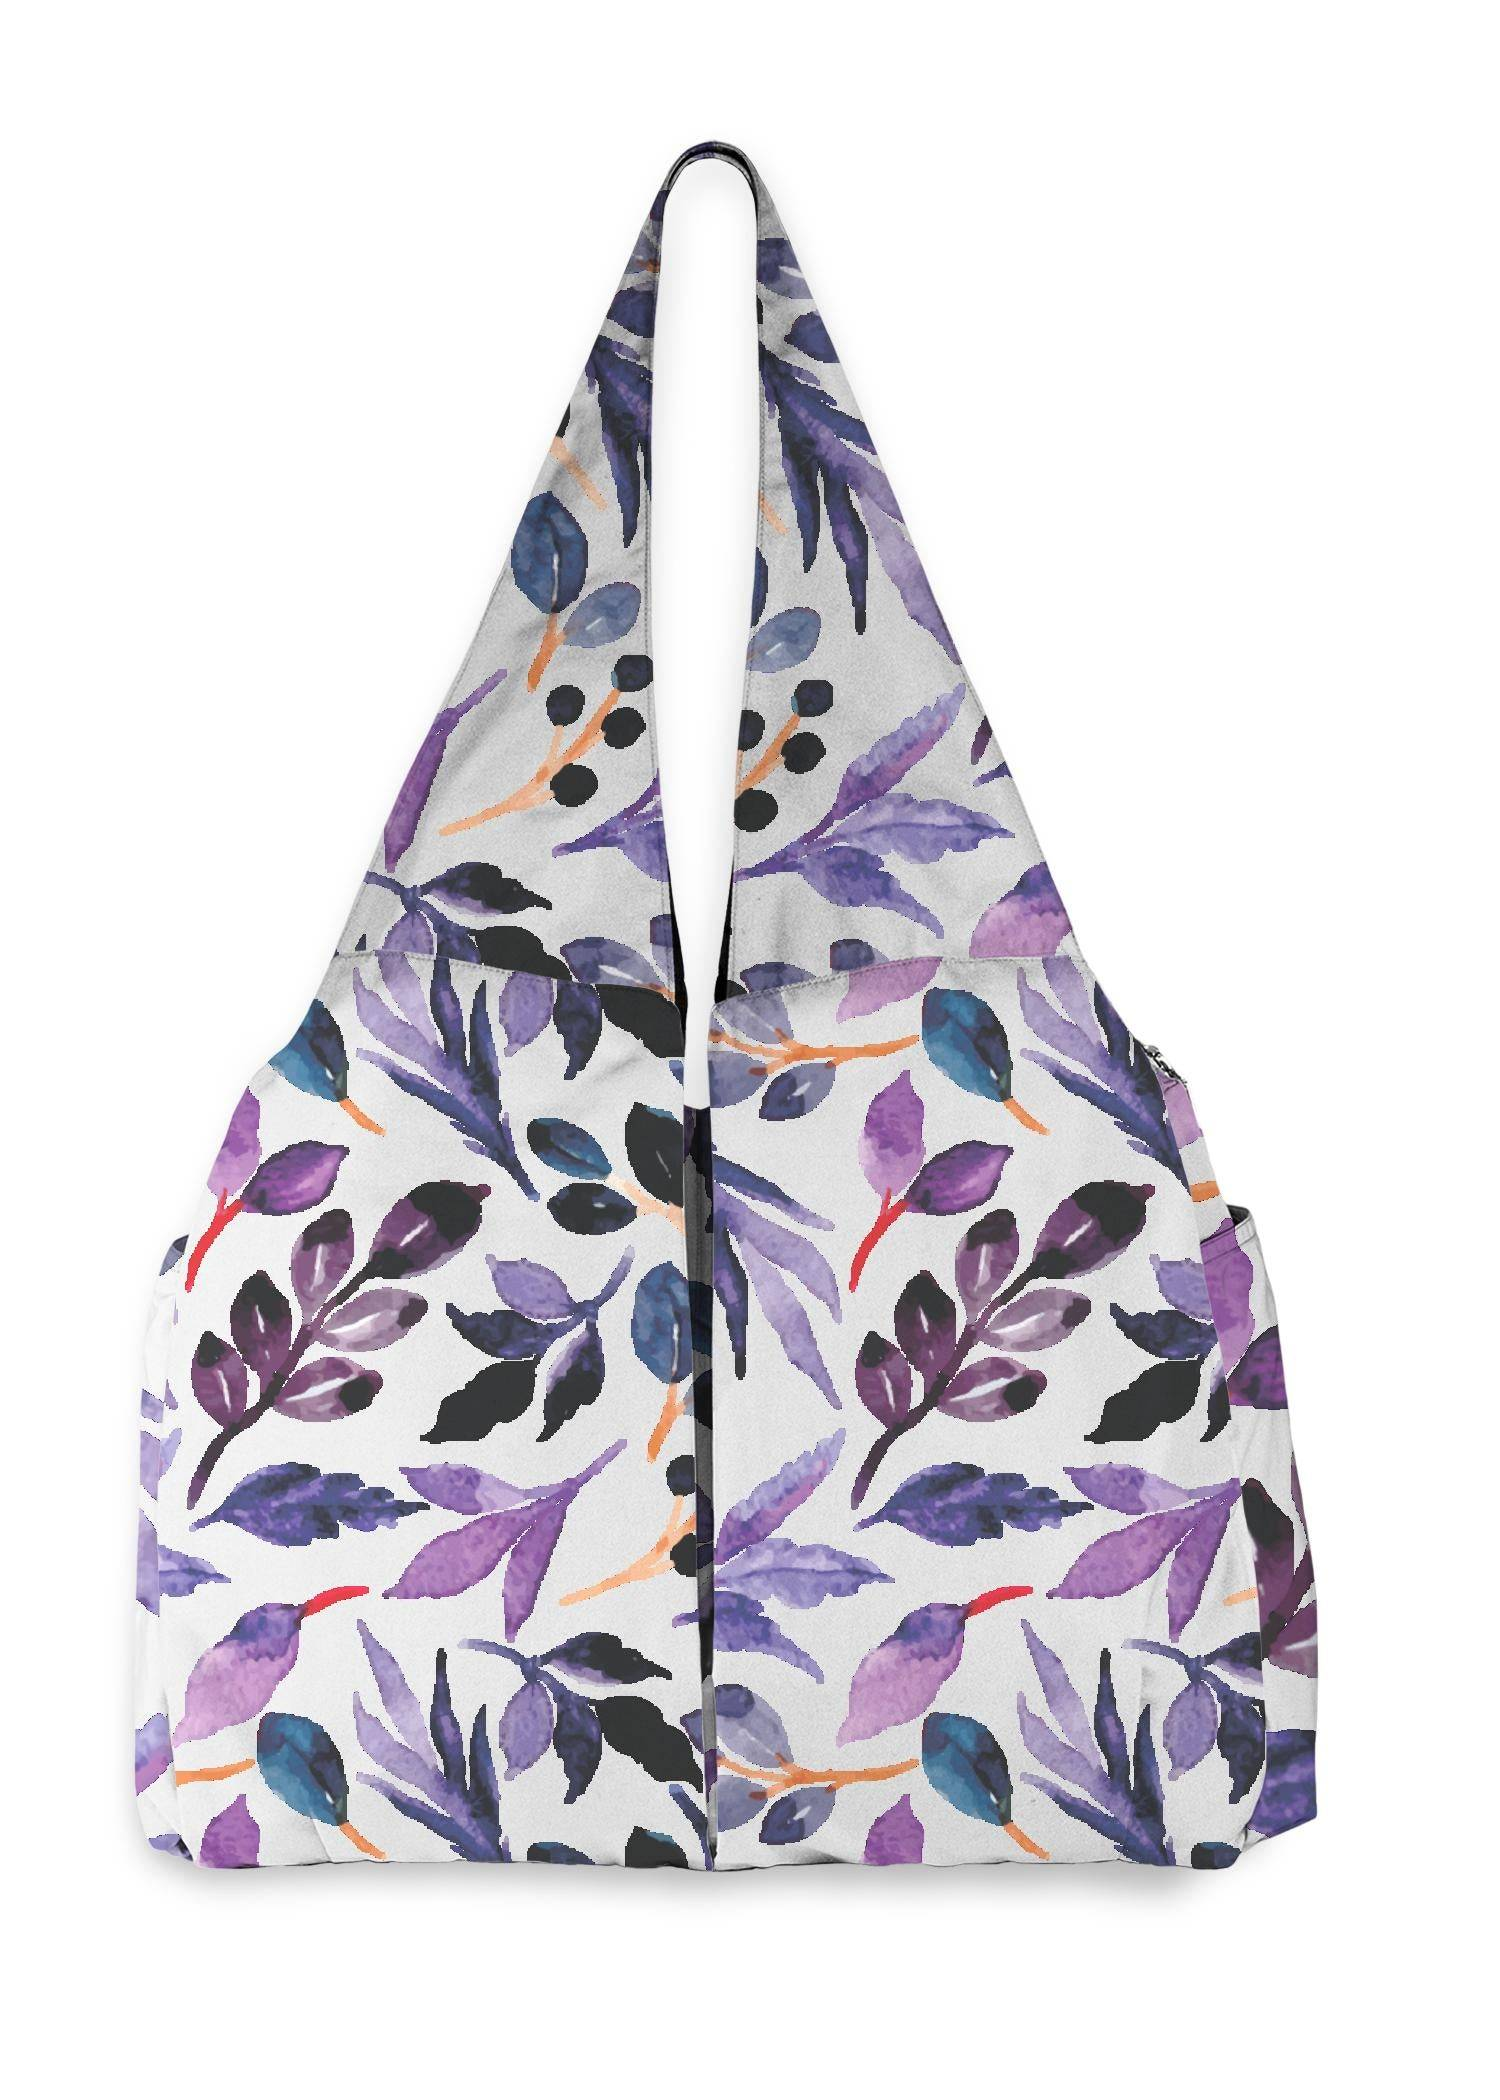 VIDA Studio Bag - Purple Watercolor Garden by VIDA Original Artist  - Size: One Size